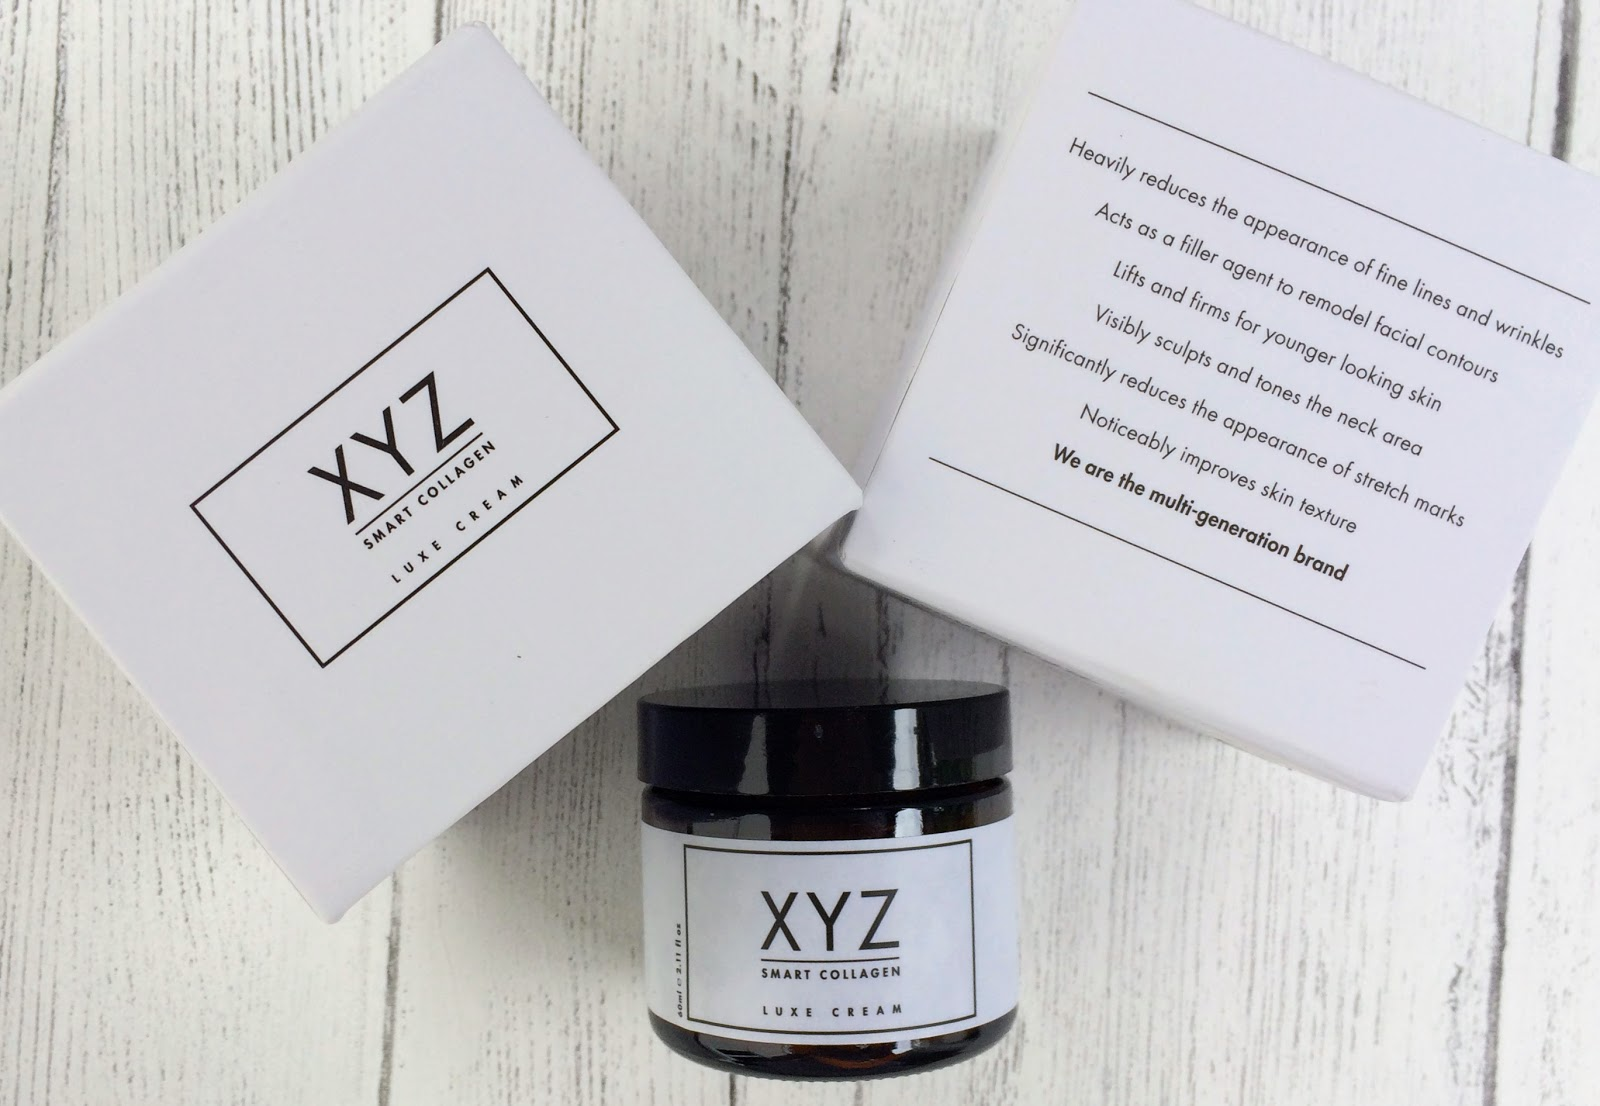 XYZ smart collagen pot and box